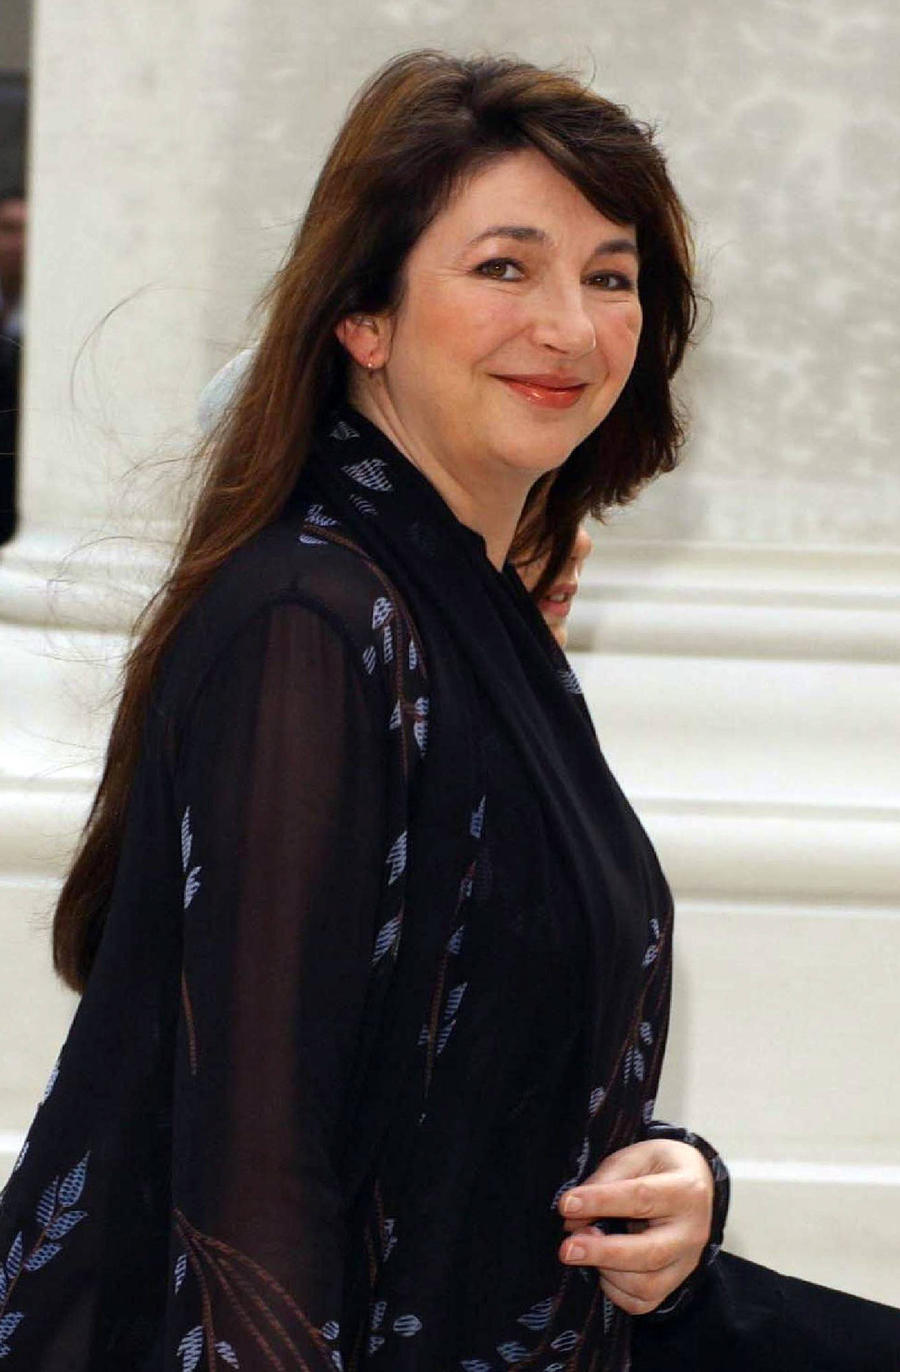 Filming Watery Music Video Gave Kate Bush Hypothermia